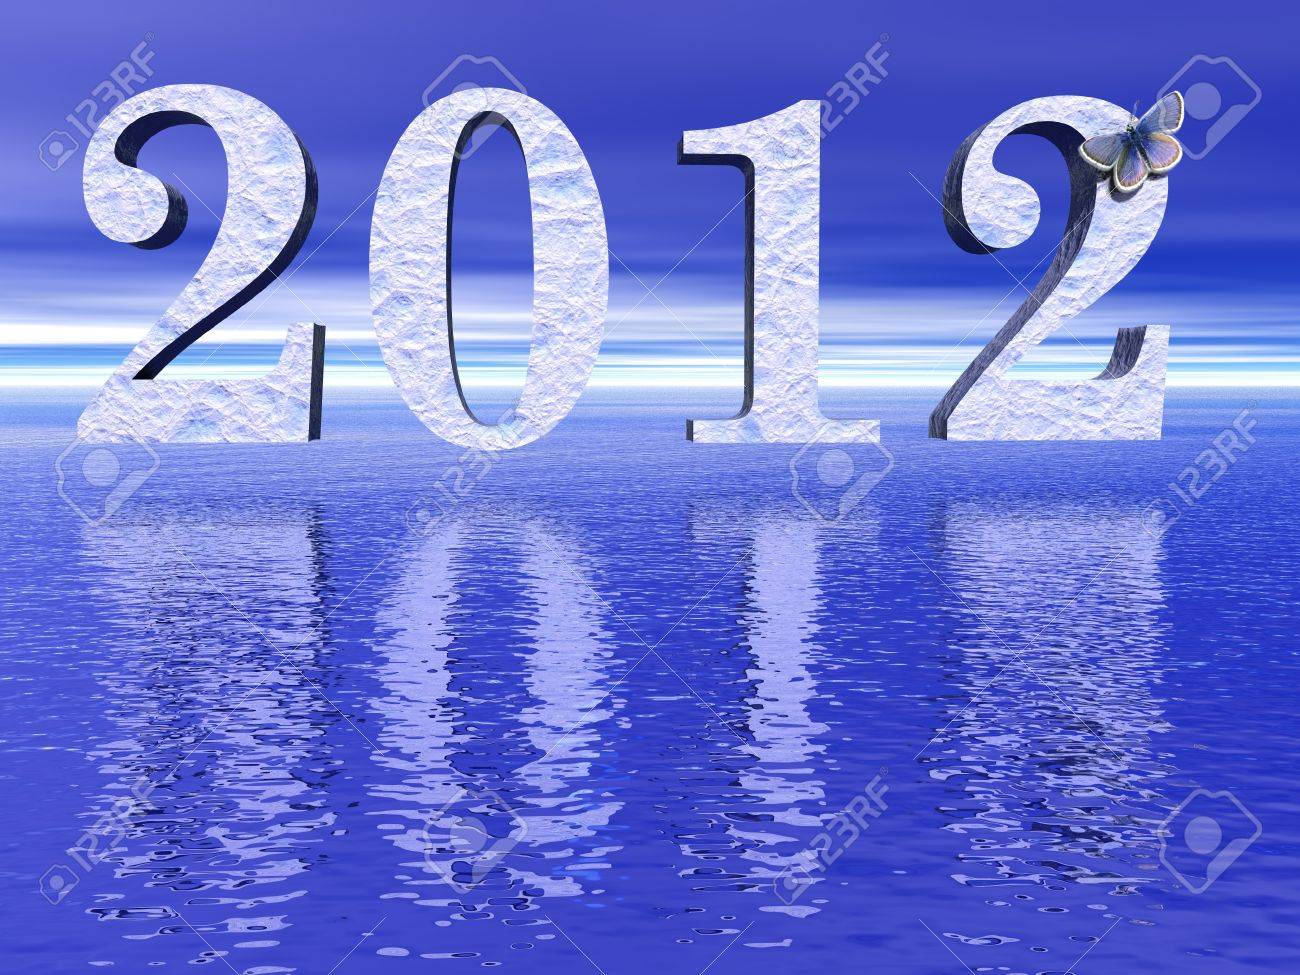 Icy 2012 upon blue ocean and with little butterfly Stock Photo - 10478364